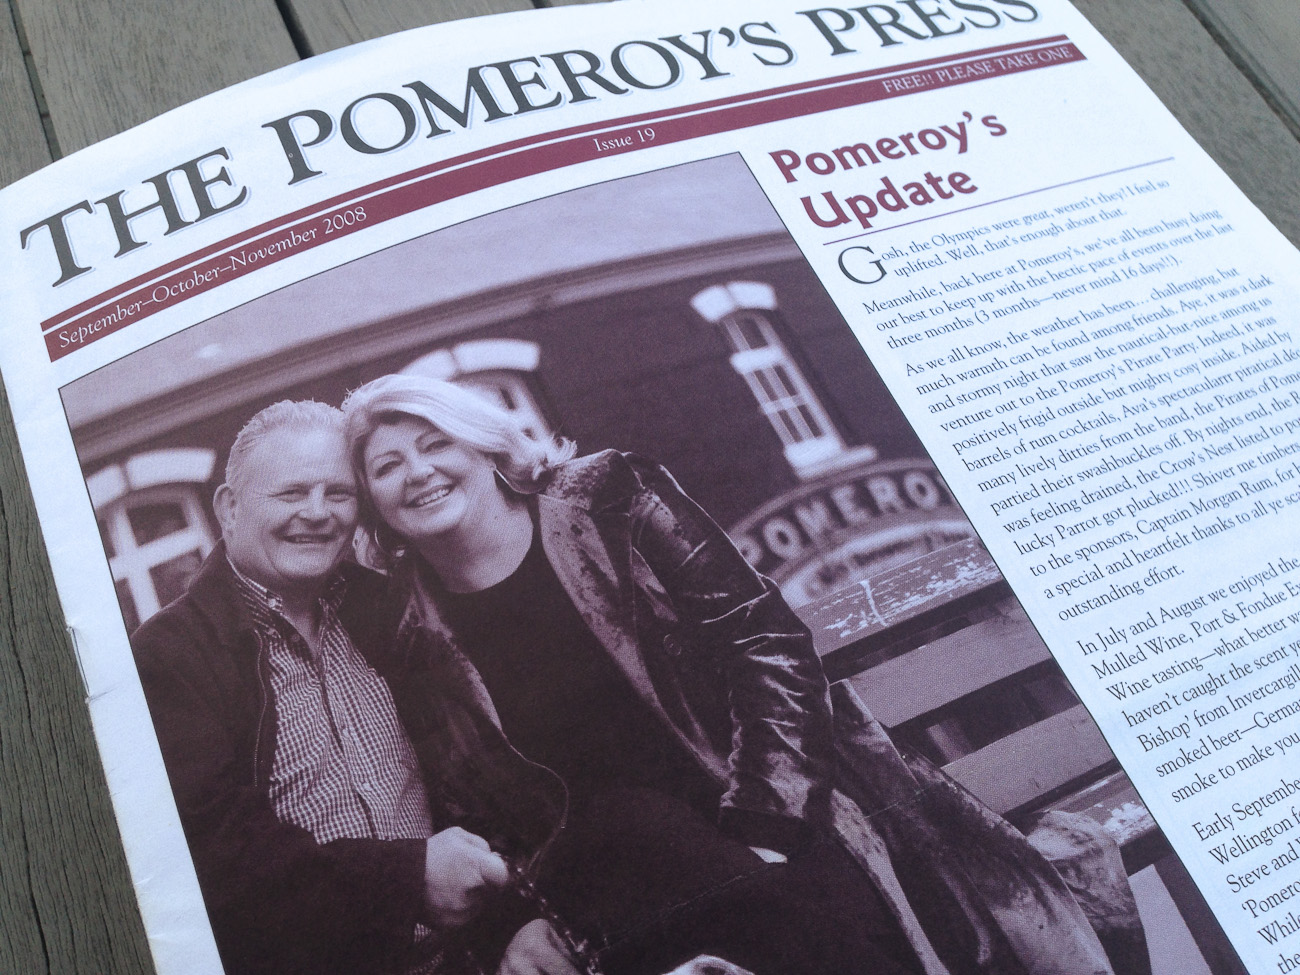 Pomeroy's Press newsletter front page, masthead, leading article, Pomeroy's family greeting, photo of Steve and Victoria Pomeroy.